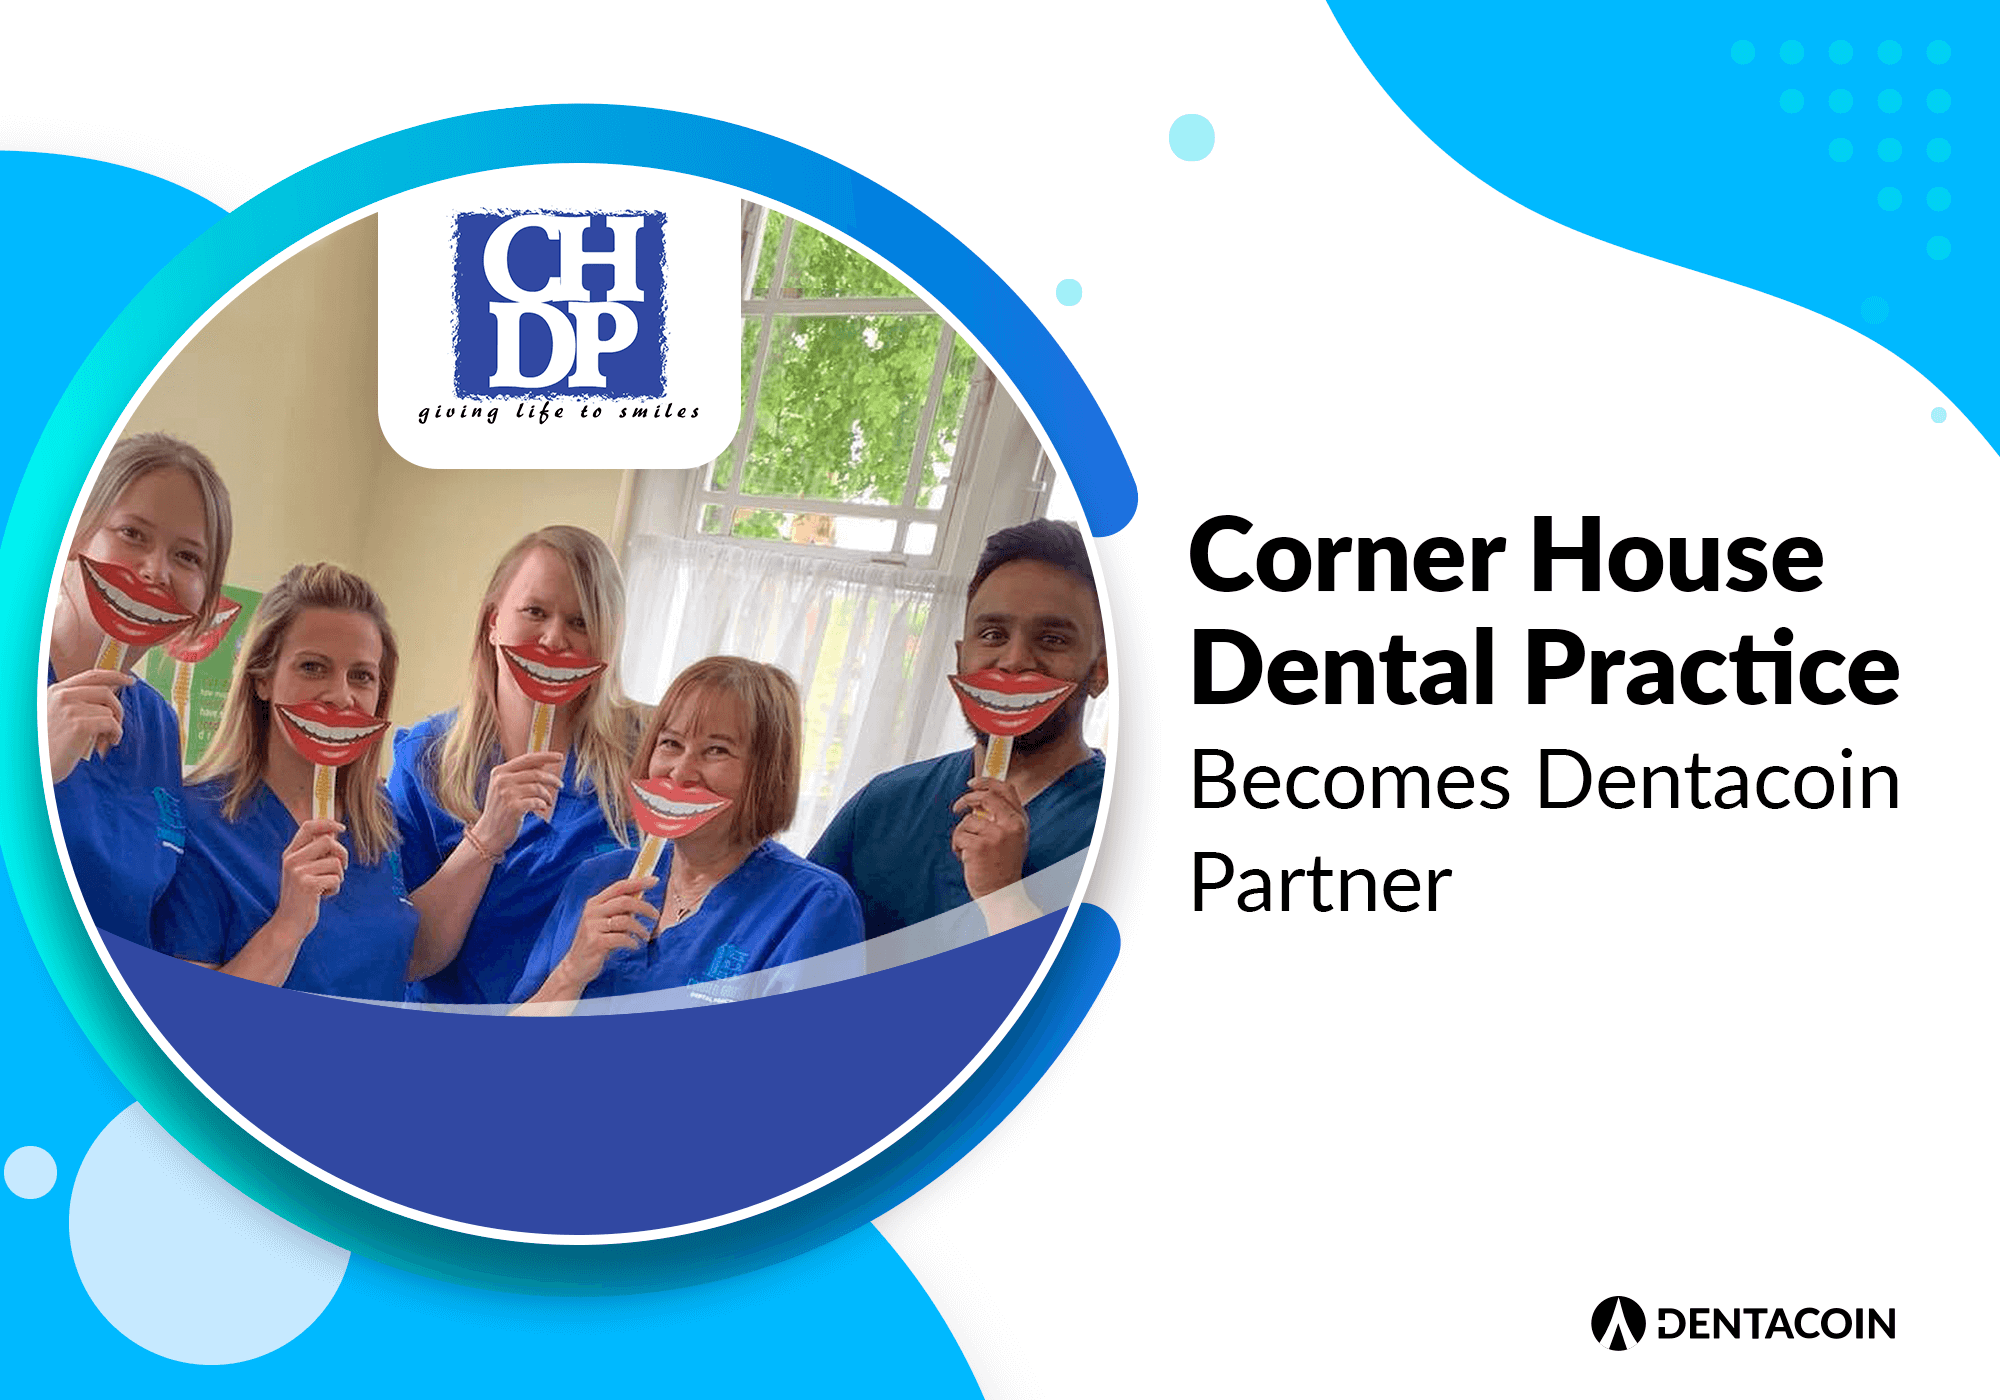 Corner house dental practice dentacoin partner